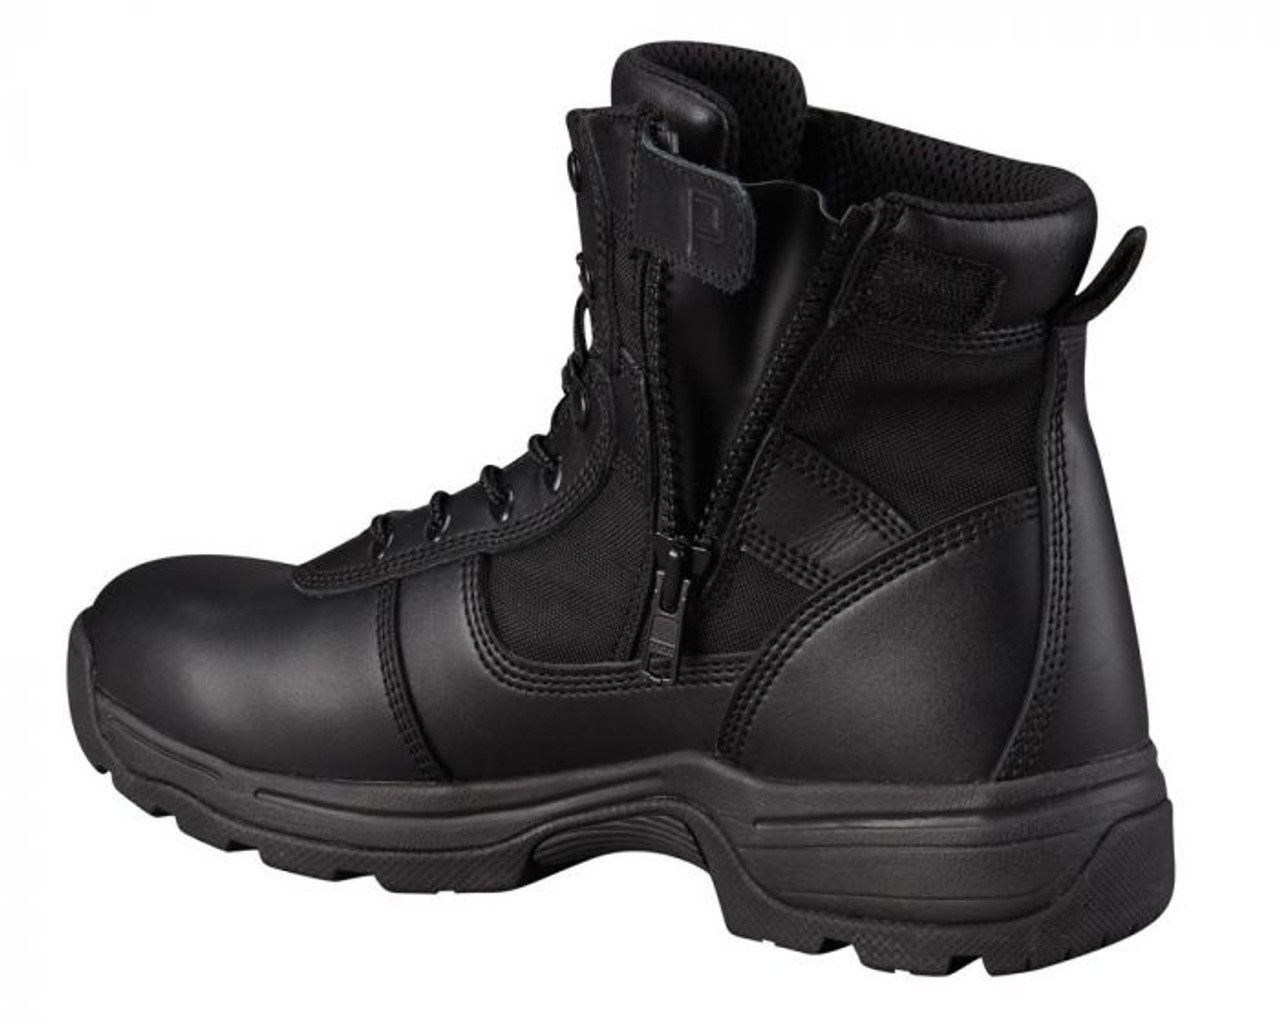 Right inside zipper view of the Series 100 Waterproof 6in Boot by Propper